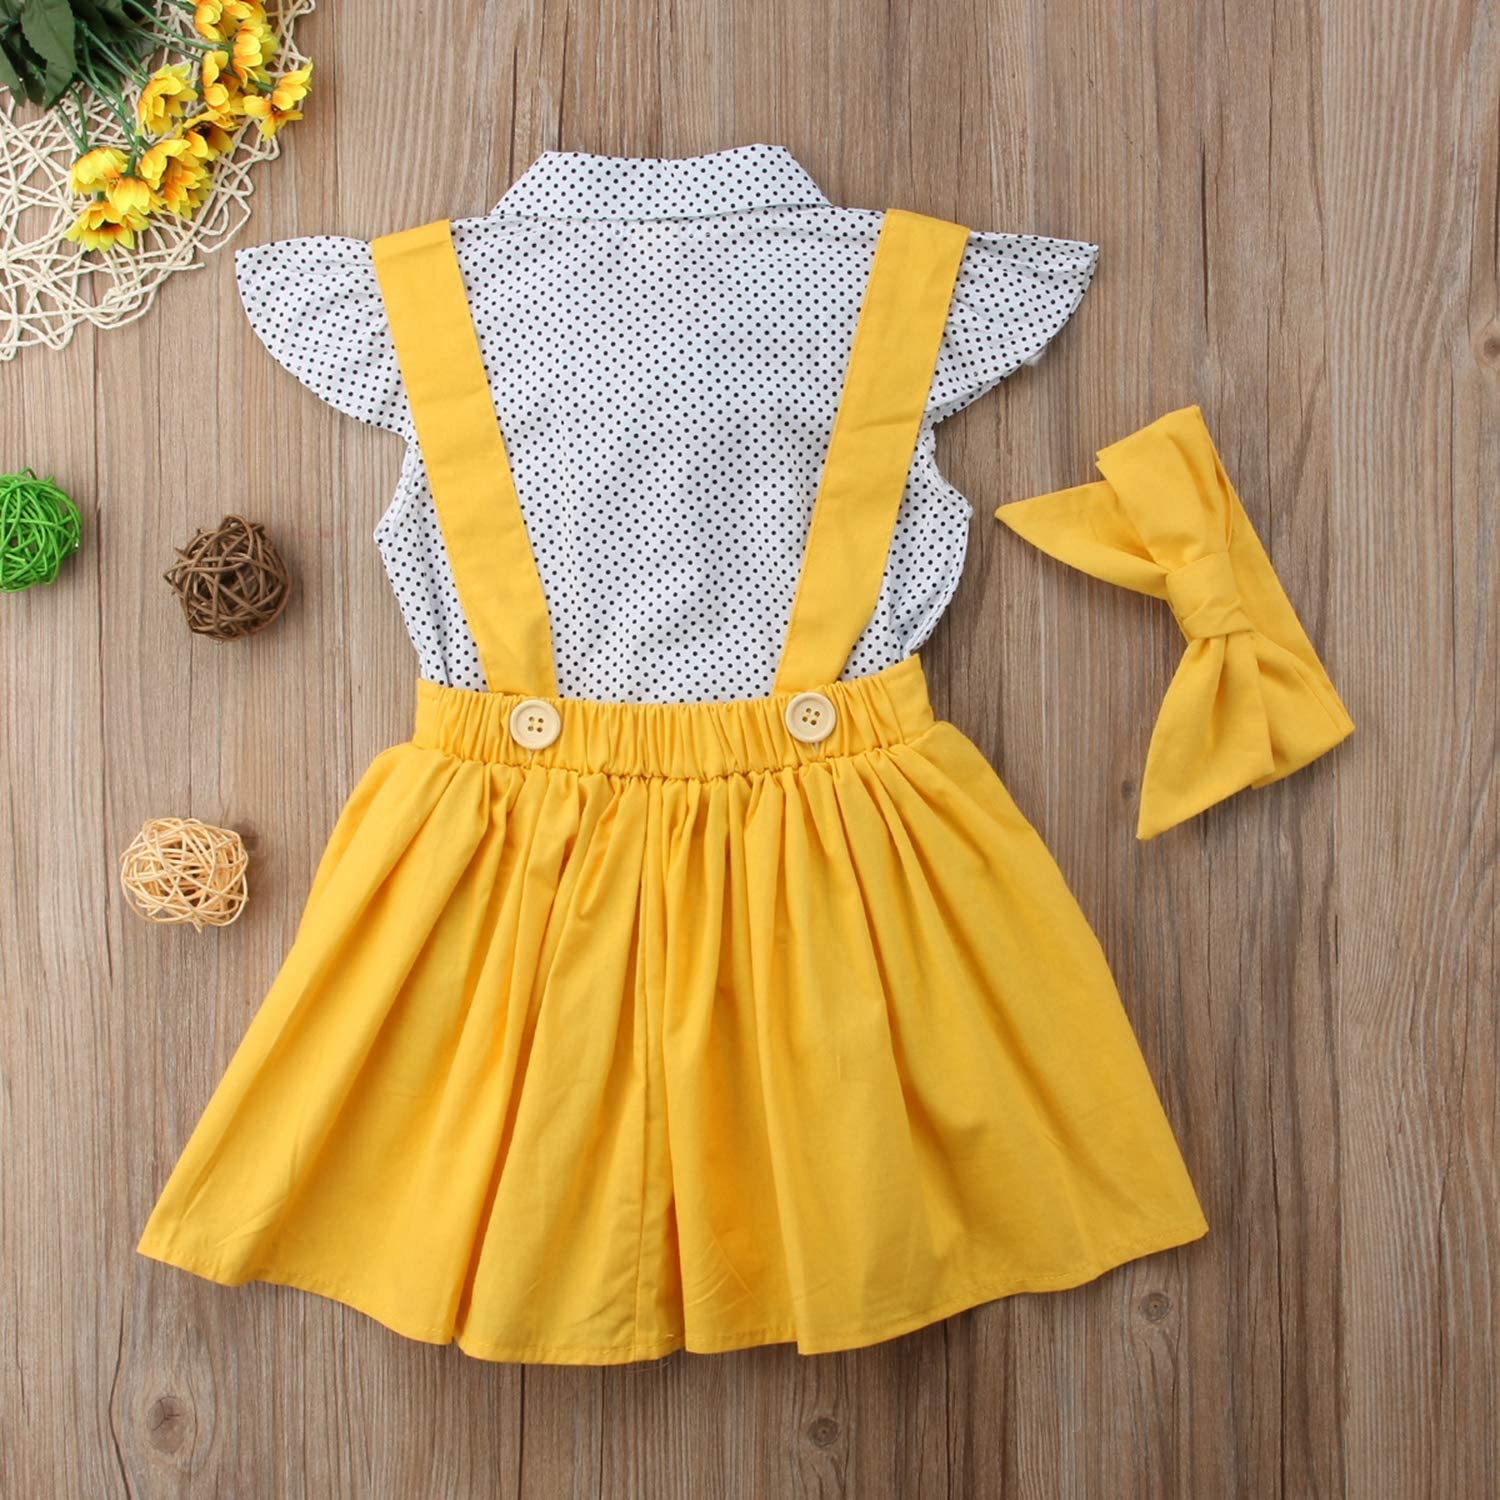 New Baby Outfit 3Pcs Kids Baby Girls 2019 Flying Polka Dot Bodysuit Suspender Skirt Overalls Yellow Set Cute Clothes